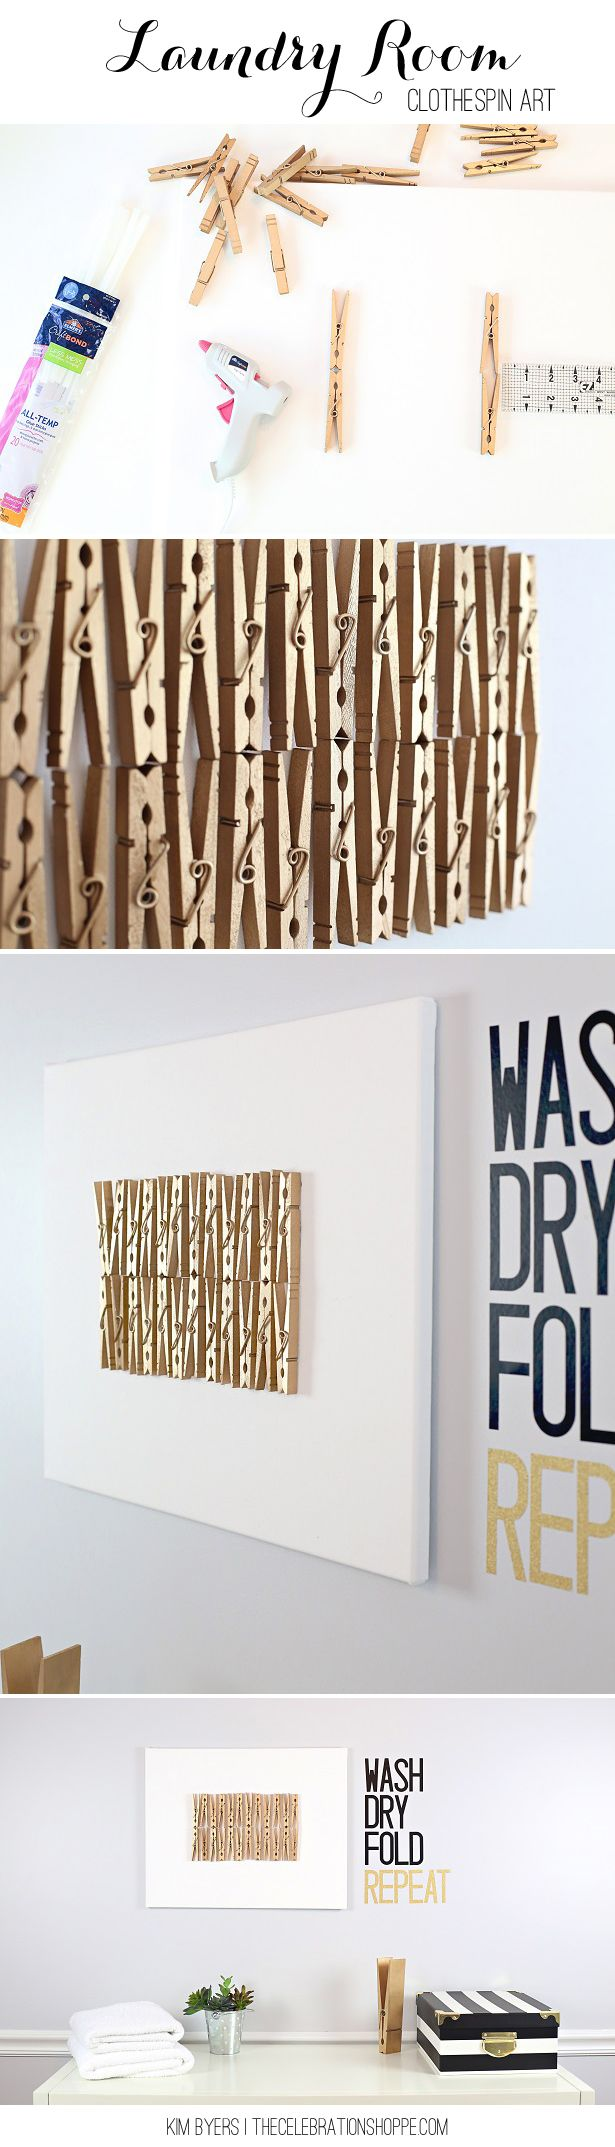 Clothespin crafts for your laundry room